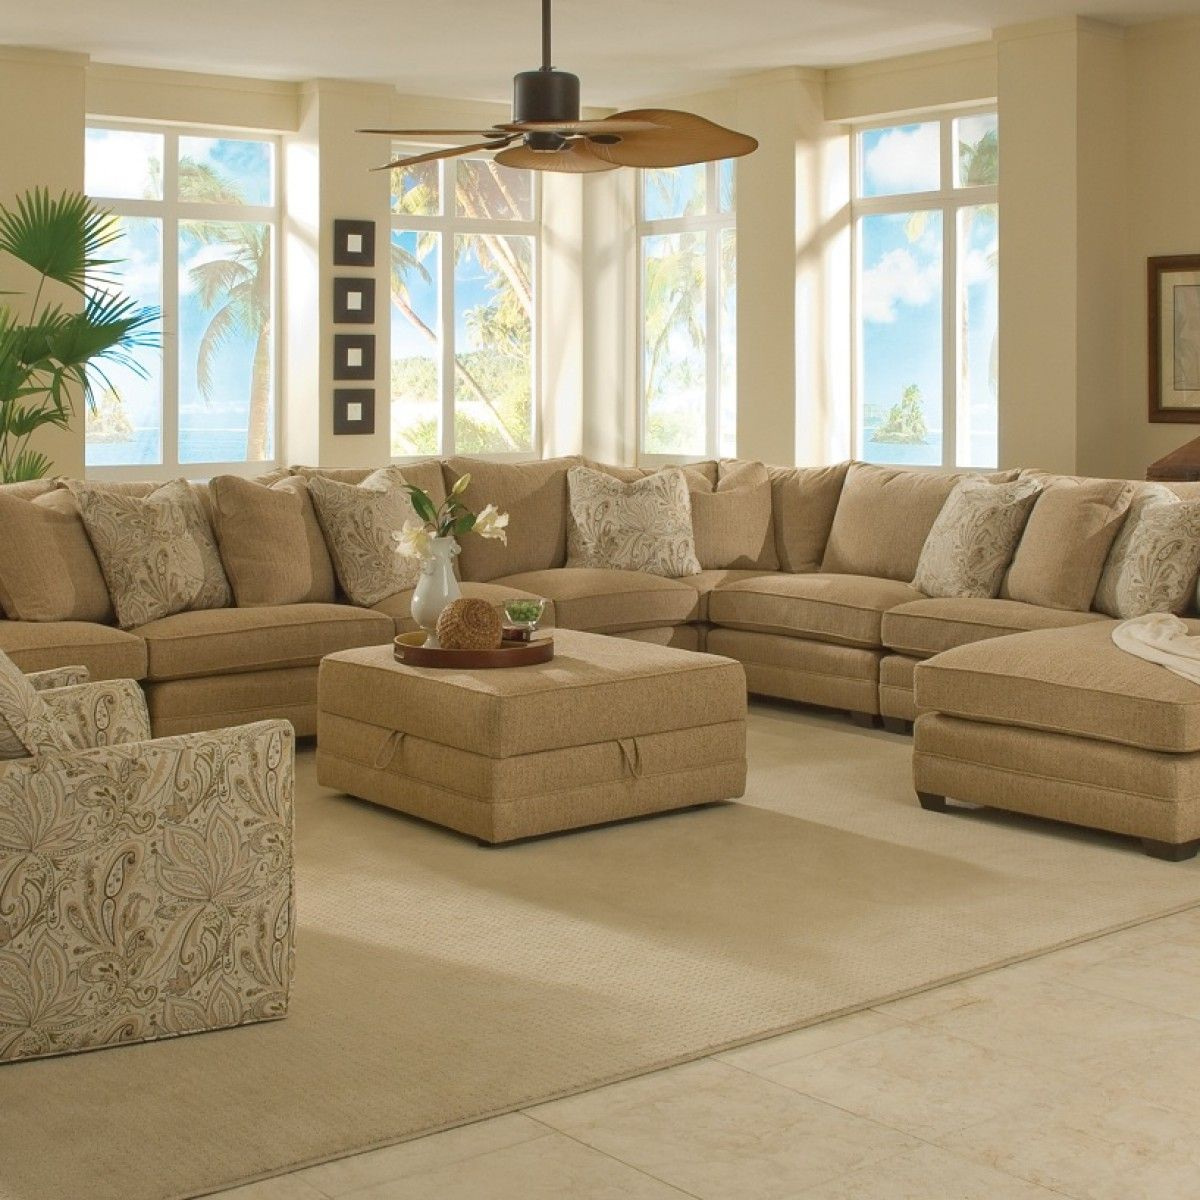 Magnificent large sectional sofas family room for Sitting room sofa designs